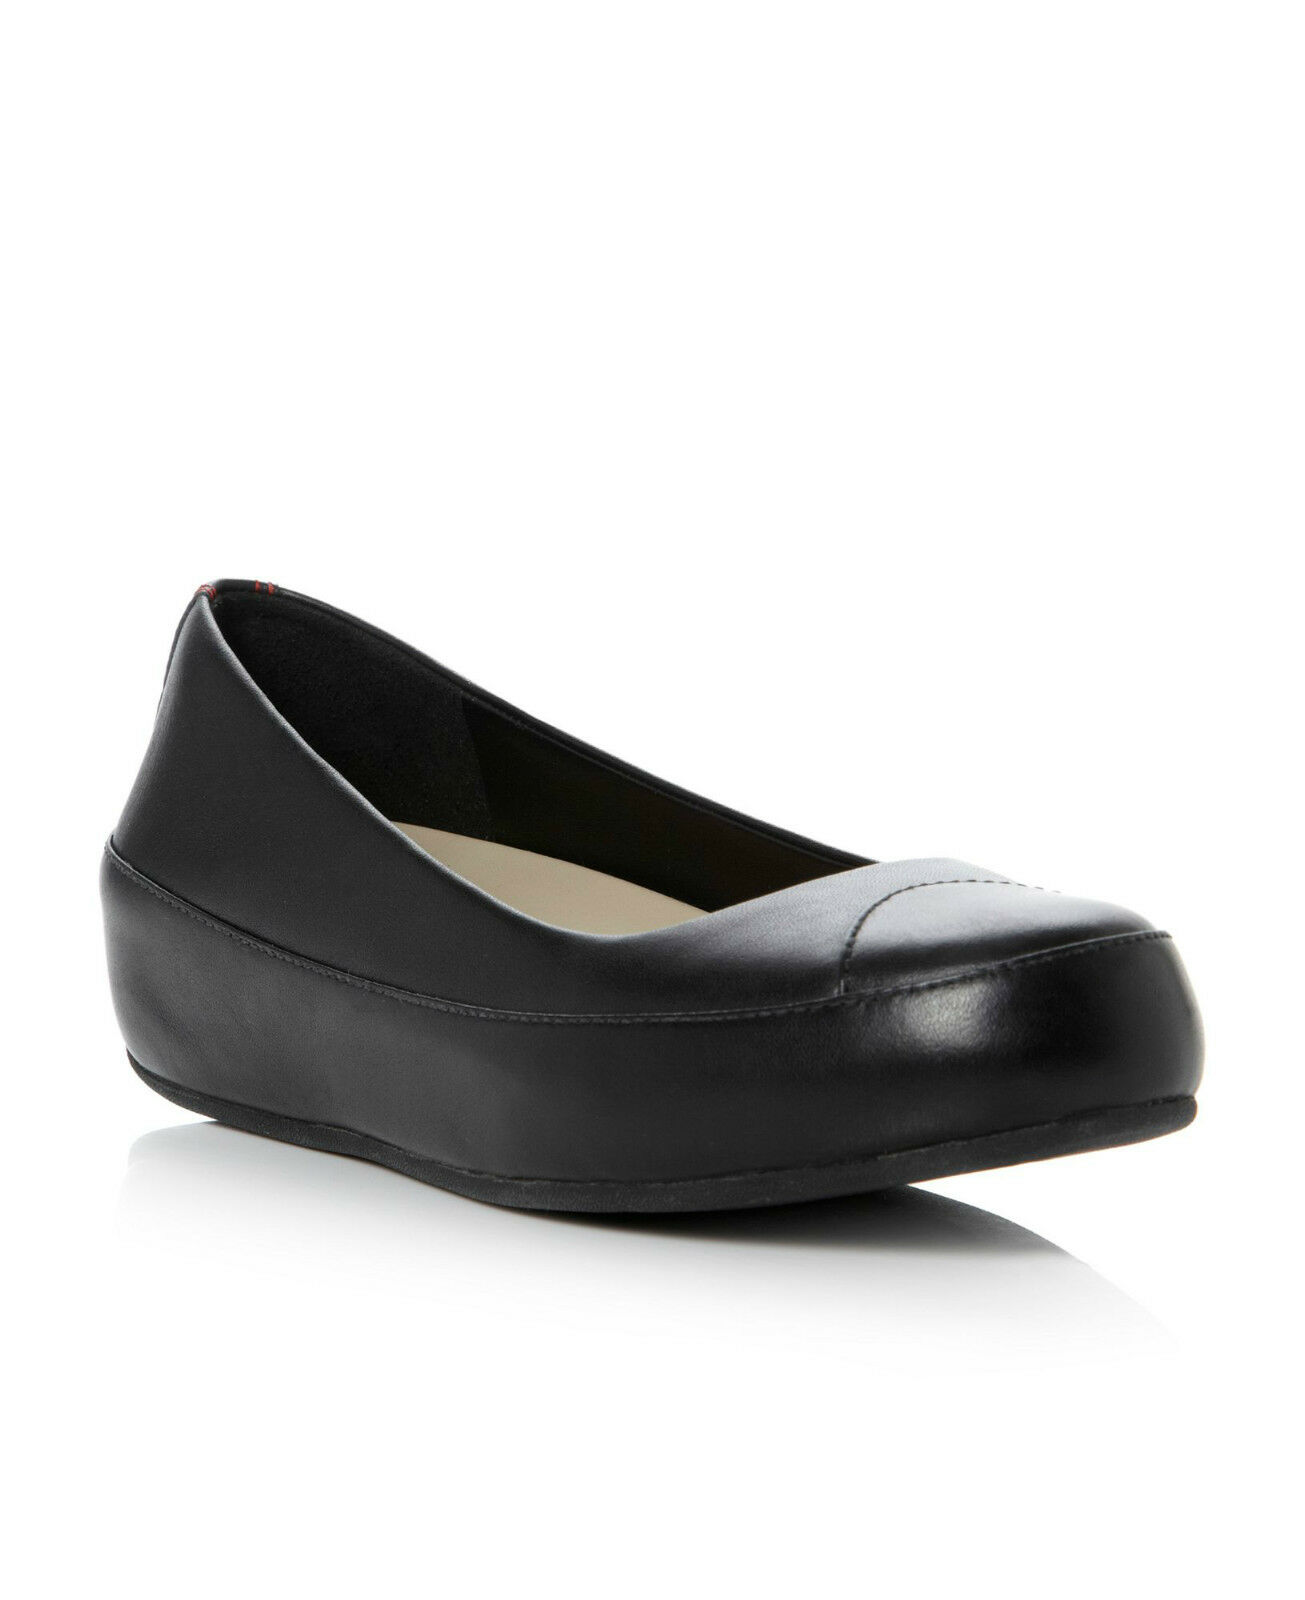 FITFLOP™ DUE BLACK LEATHER PLATFORM BALLERINA PUMPS Schuhe UK 5 EUR 38